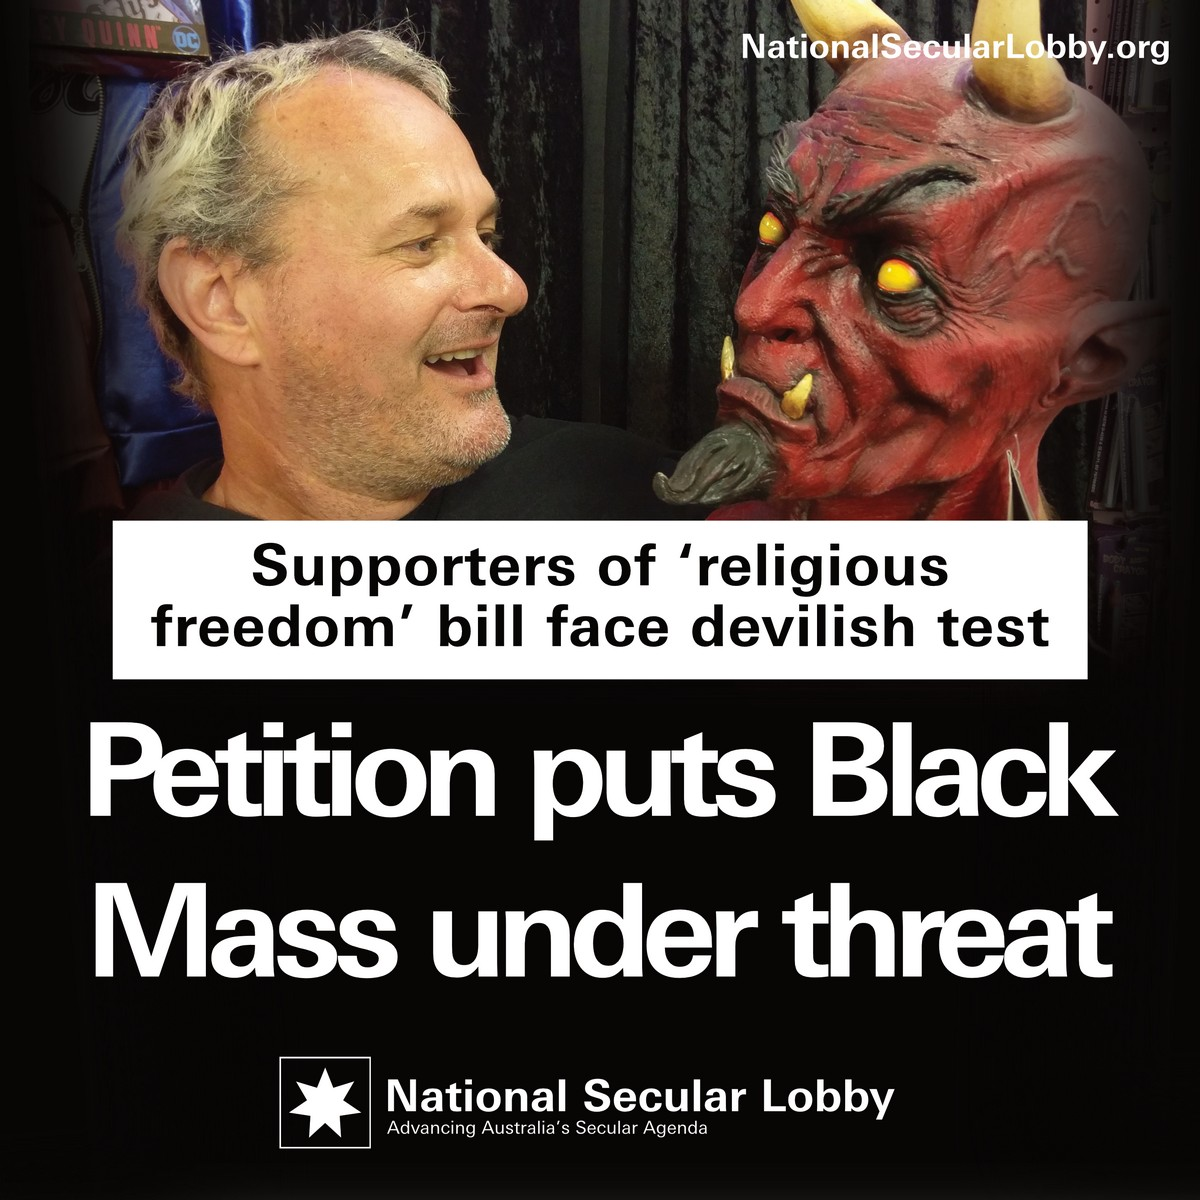 black-mass-petition-threat-facebook